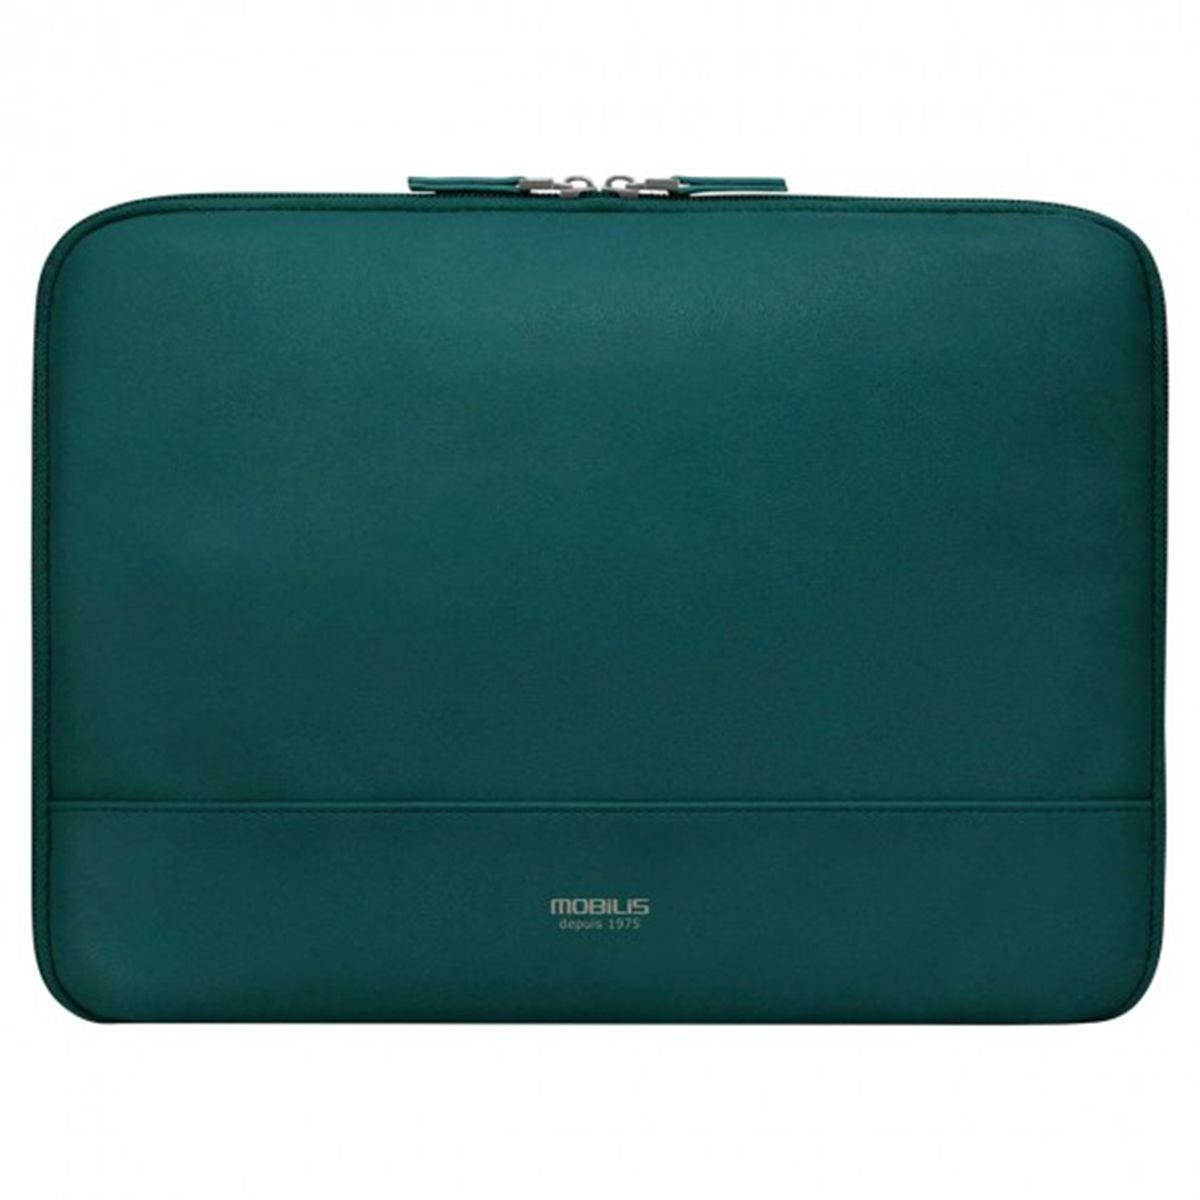 Mobilis Origine 10-12.5'' Laptop Sleeve - Prussian Blue